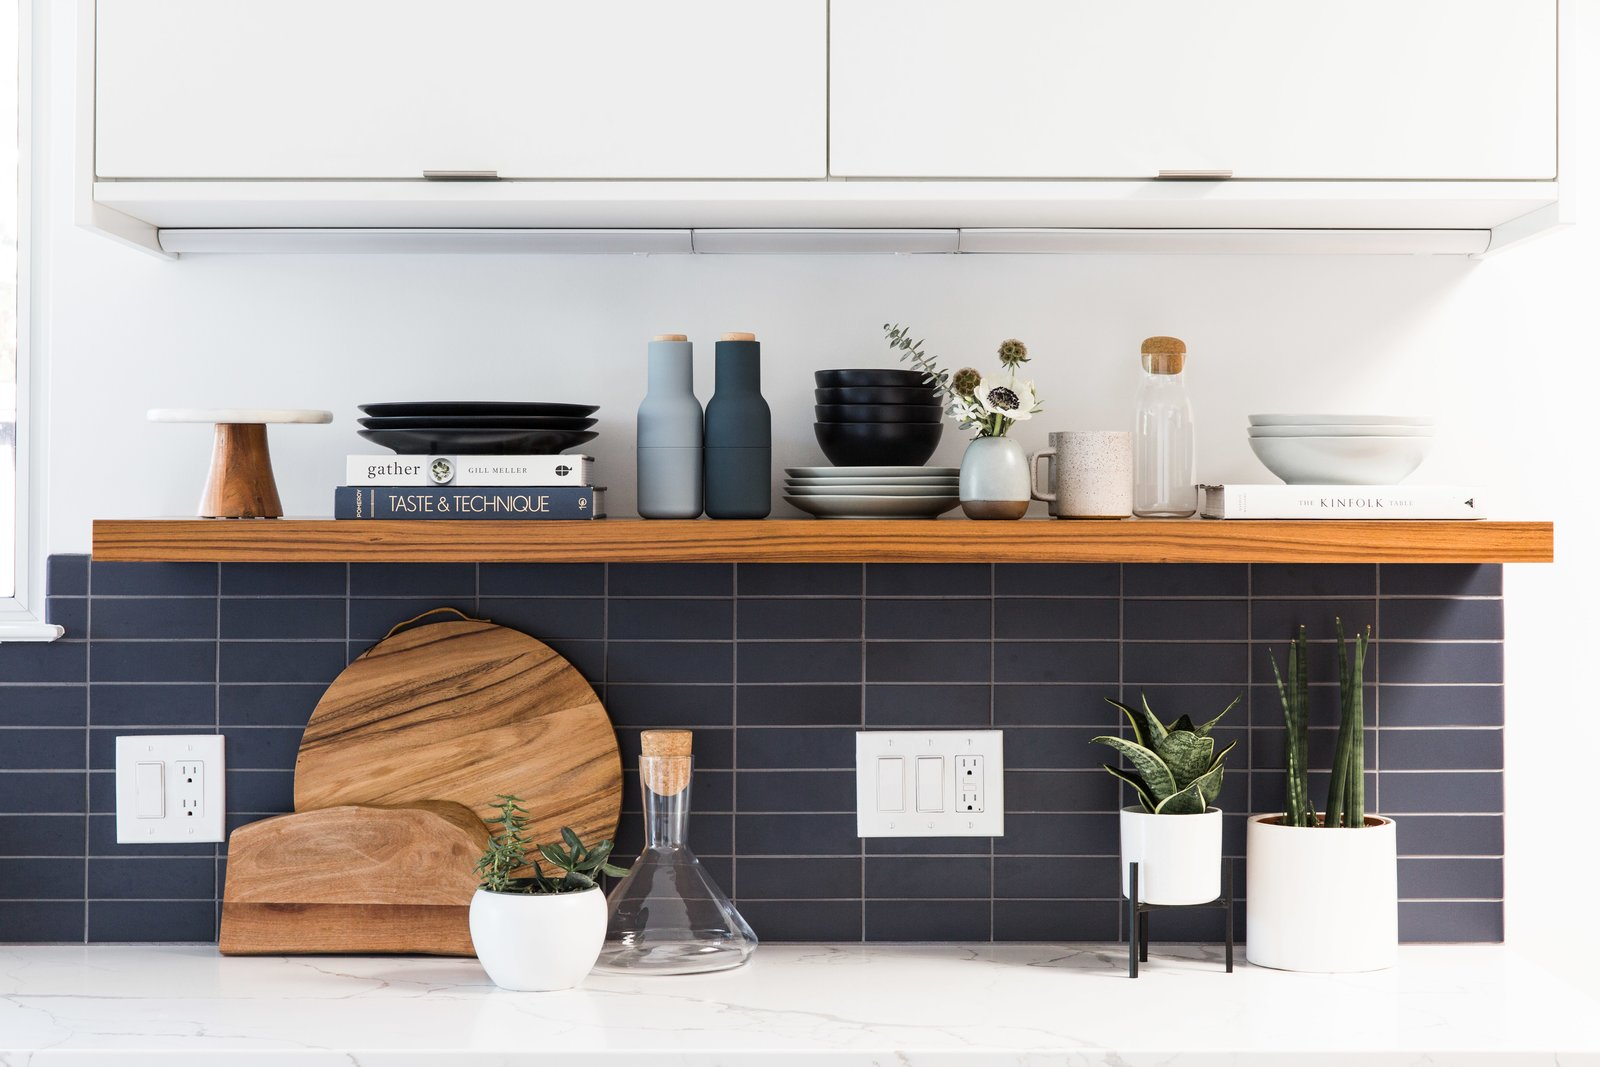 14 Affordable Tiles to Amp Up Your Kitchen Renovation